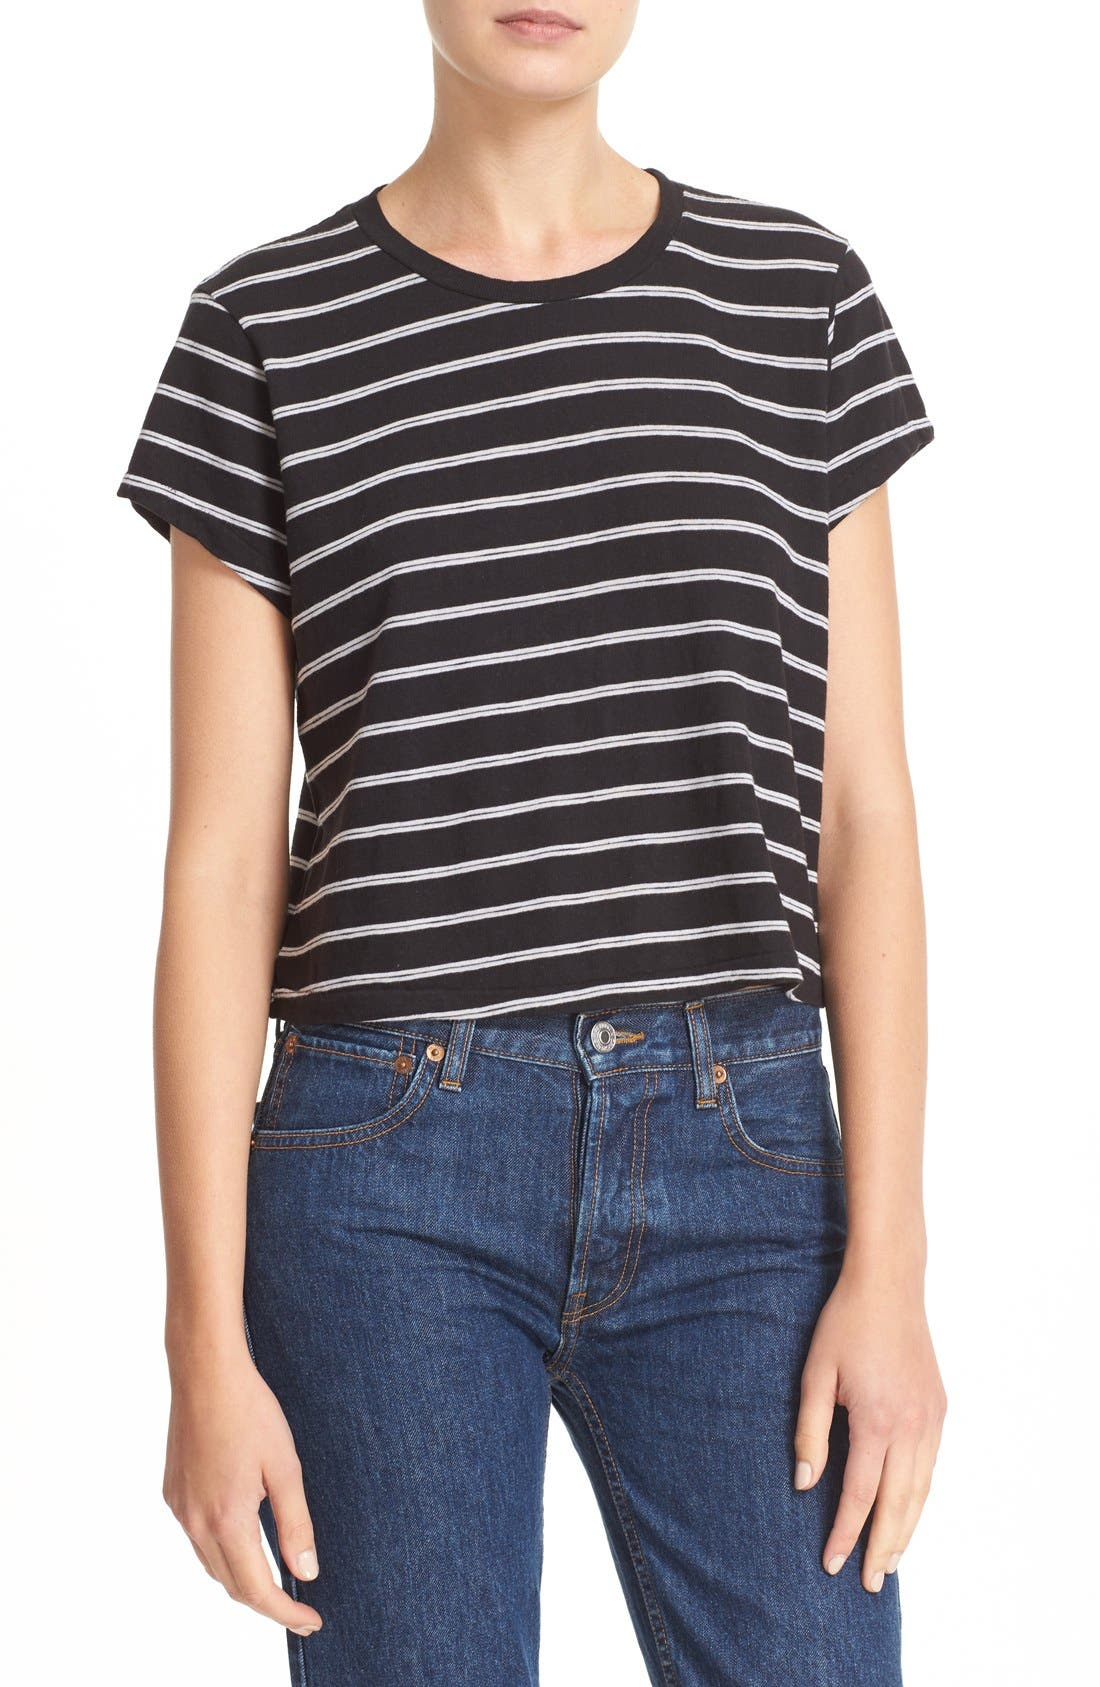 Alternate Image 1 Selected - Re/Done 'Originals' Stripe Boxy Cotton Tee